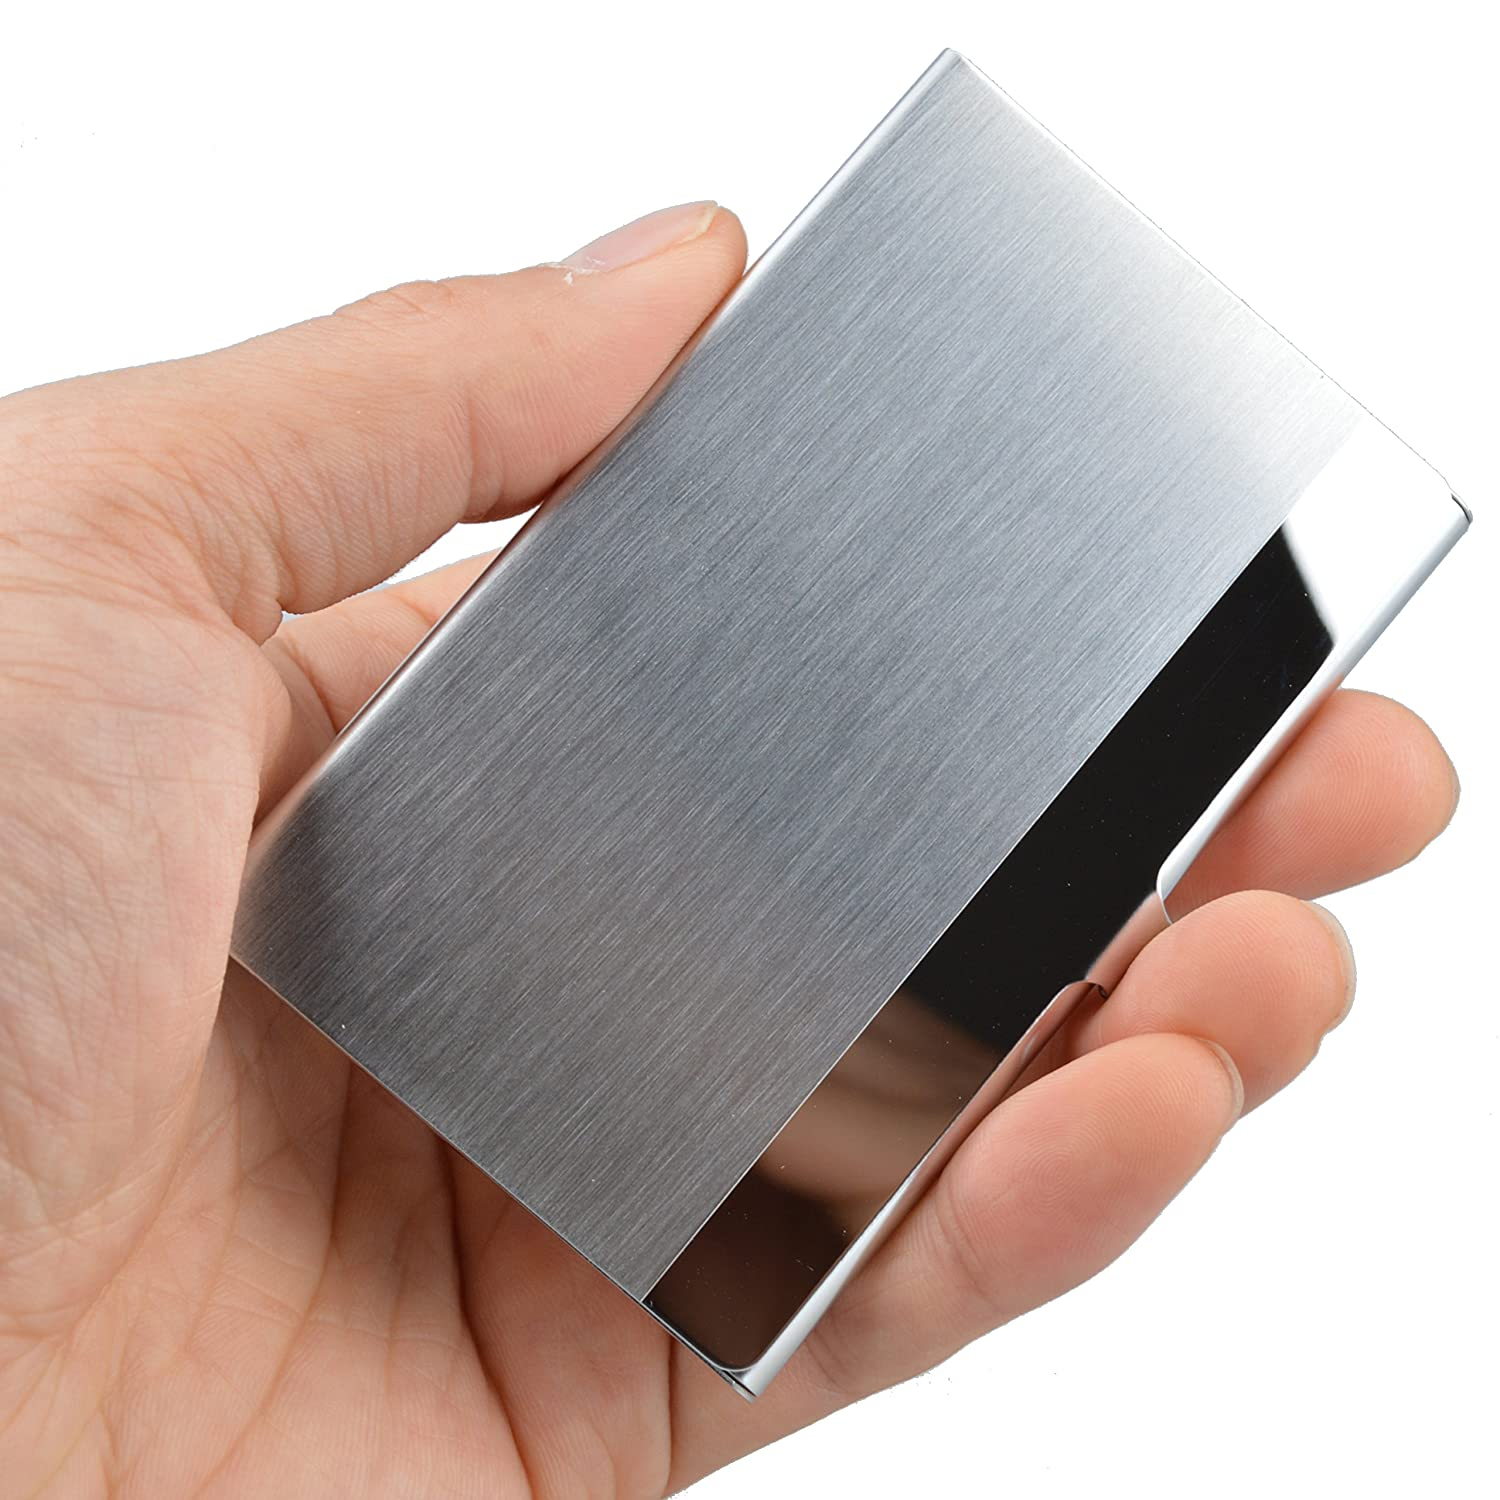 Amazon.com : MaxGear Professional Business Card Holder Business ...